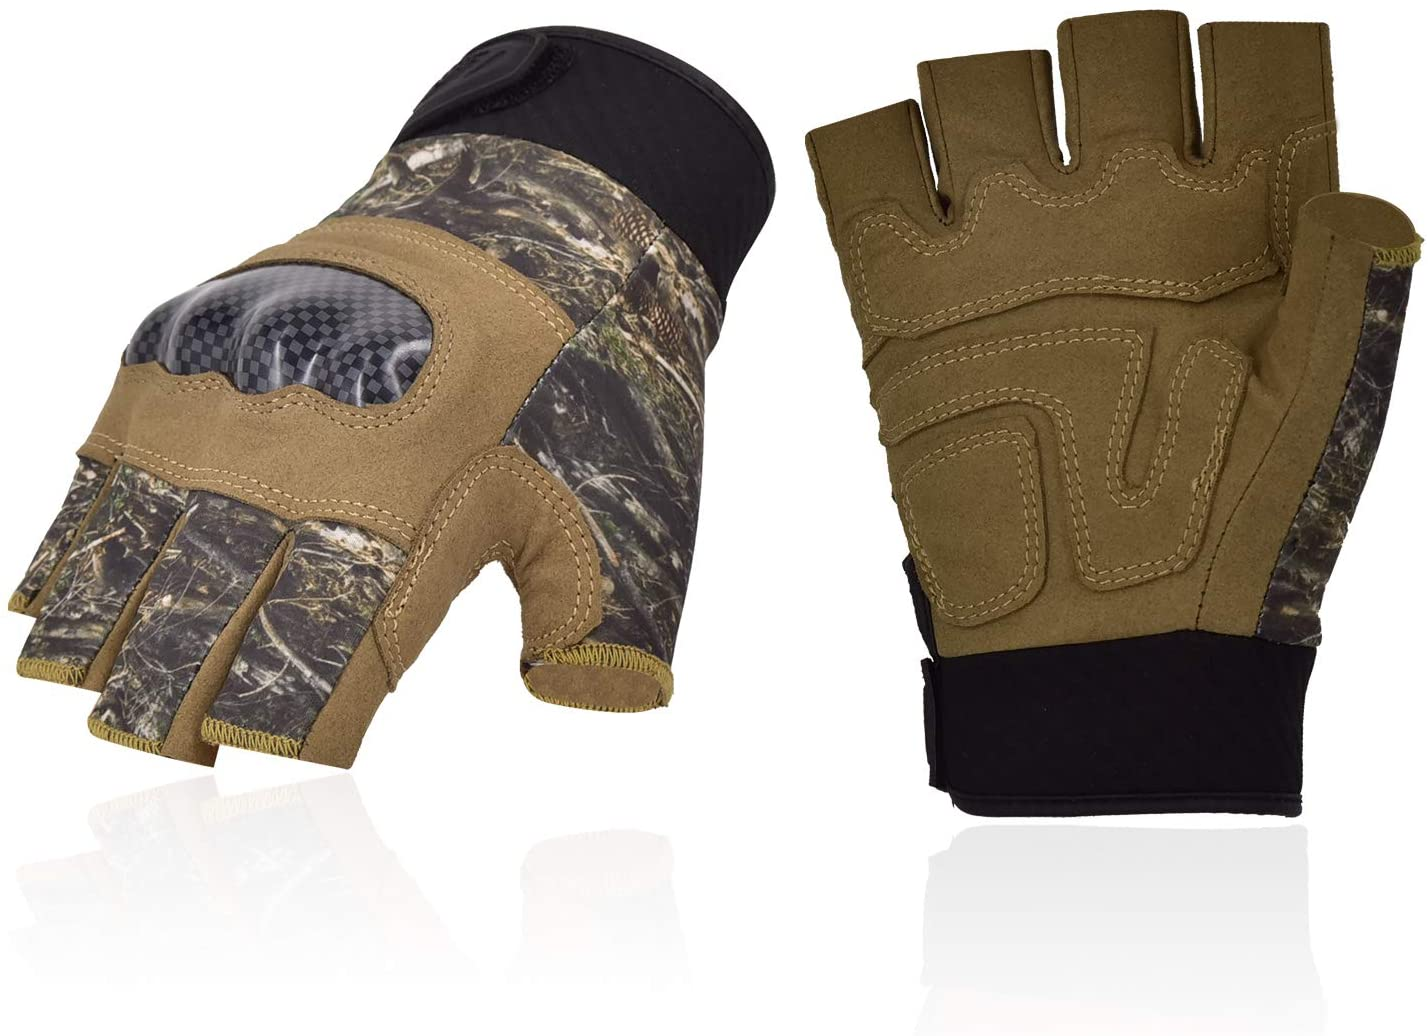 Vgo... 2Pairs Hard Knuckle Gloves for Motorcycle Cycling Hiking (Size L,CAM,SL6086)